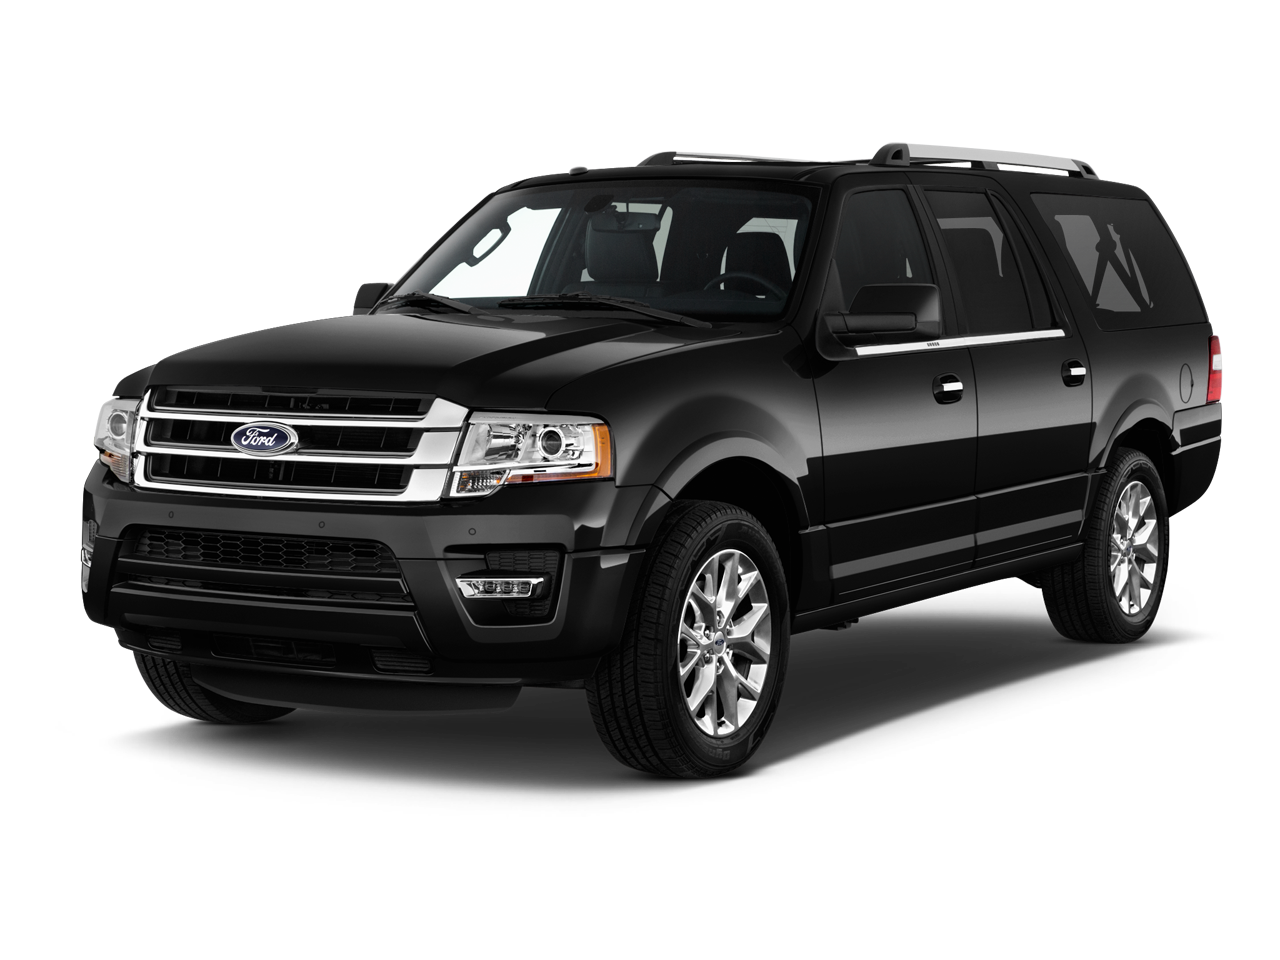 2017 ford expedition for sale near east islip ny newins bay shore ford. Black Bedroom Furniture Sets. Home Design Ideas